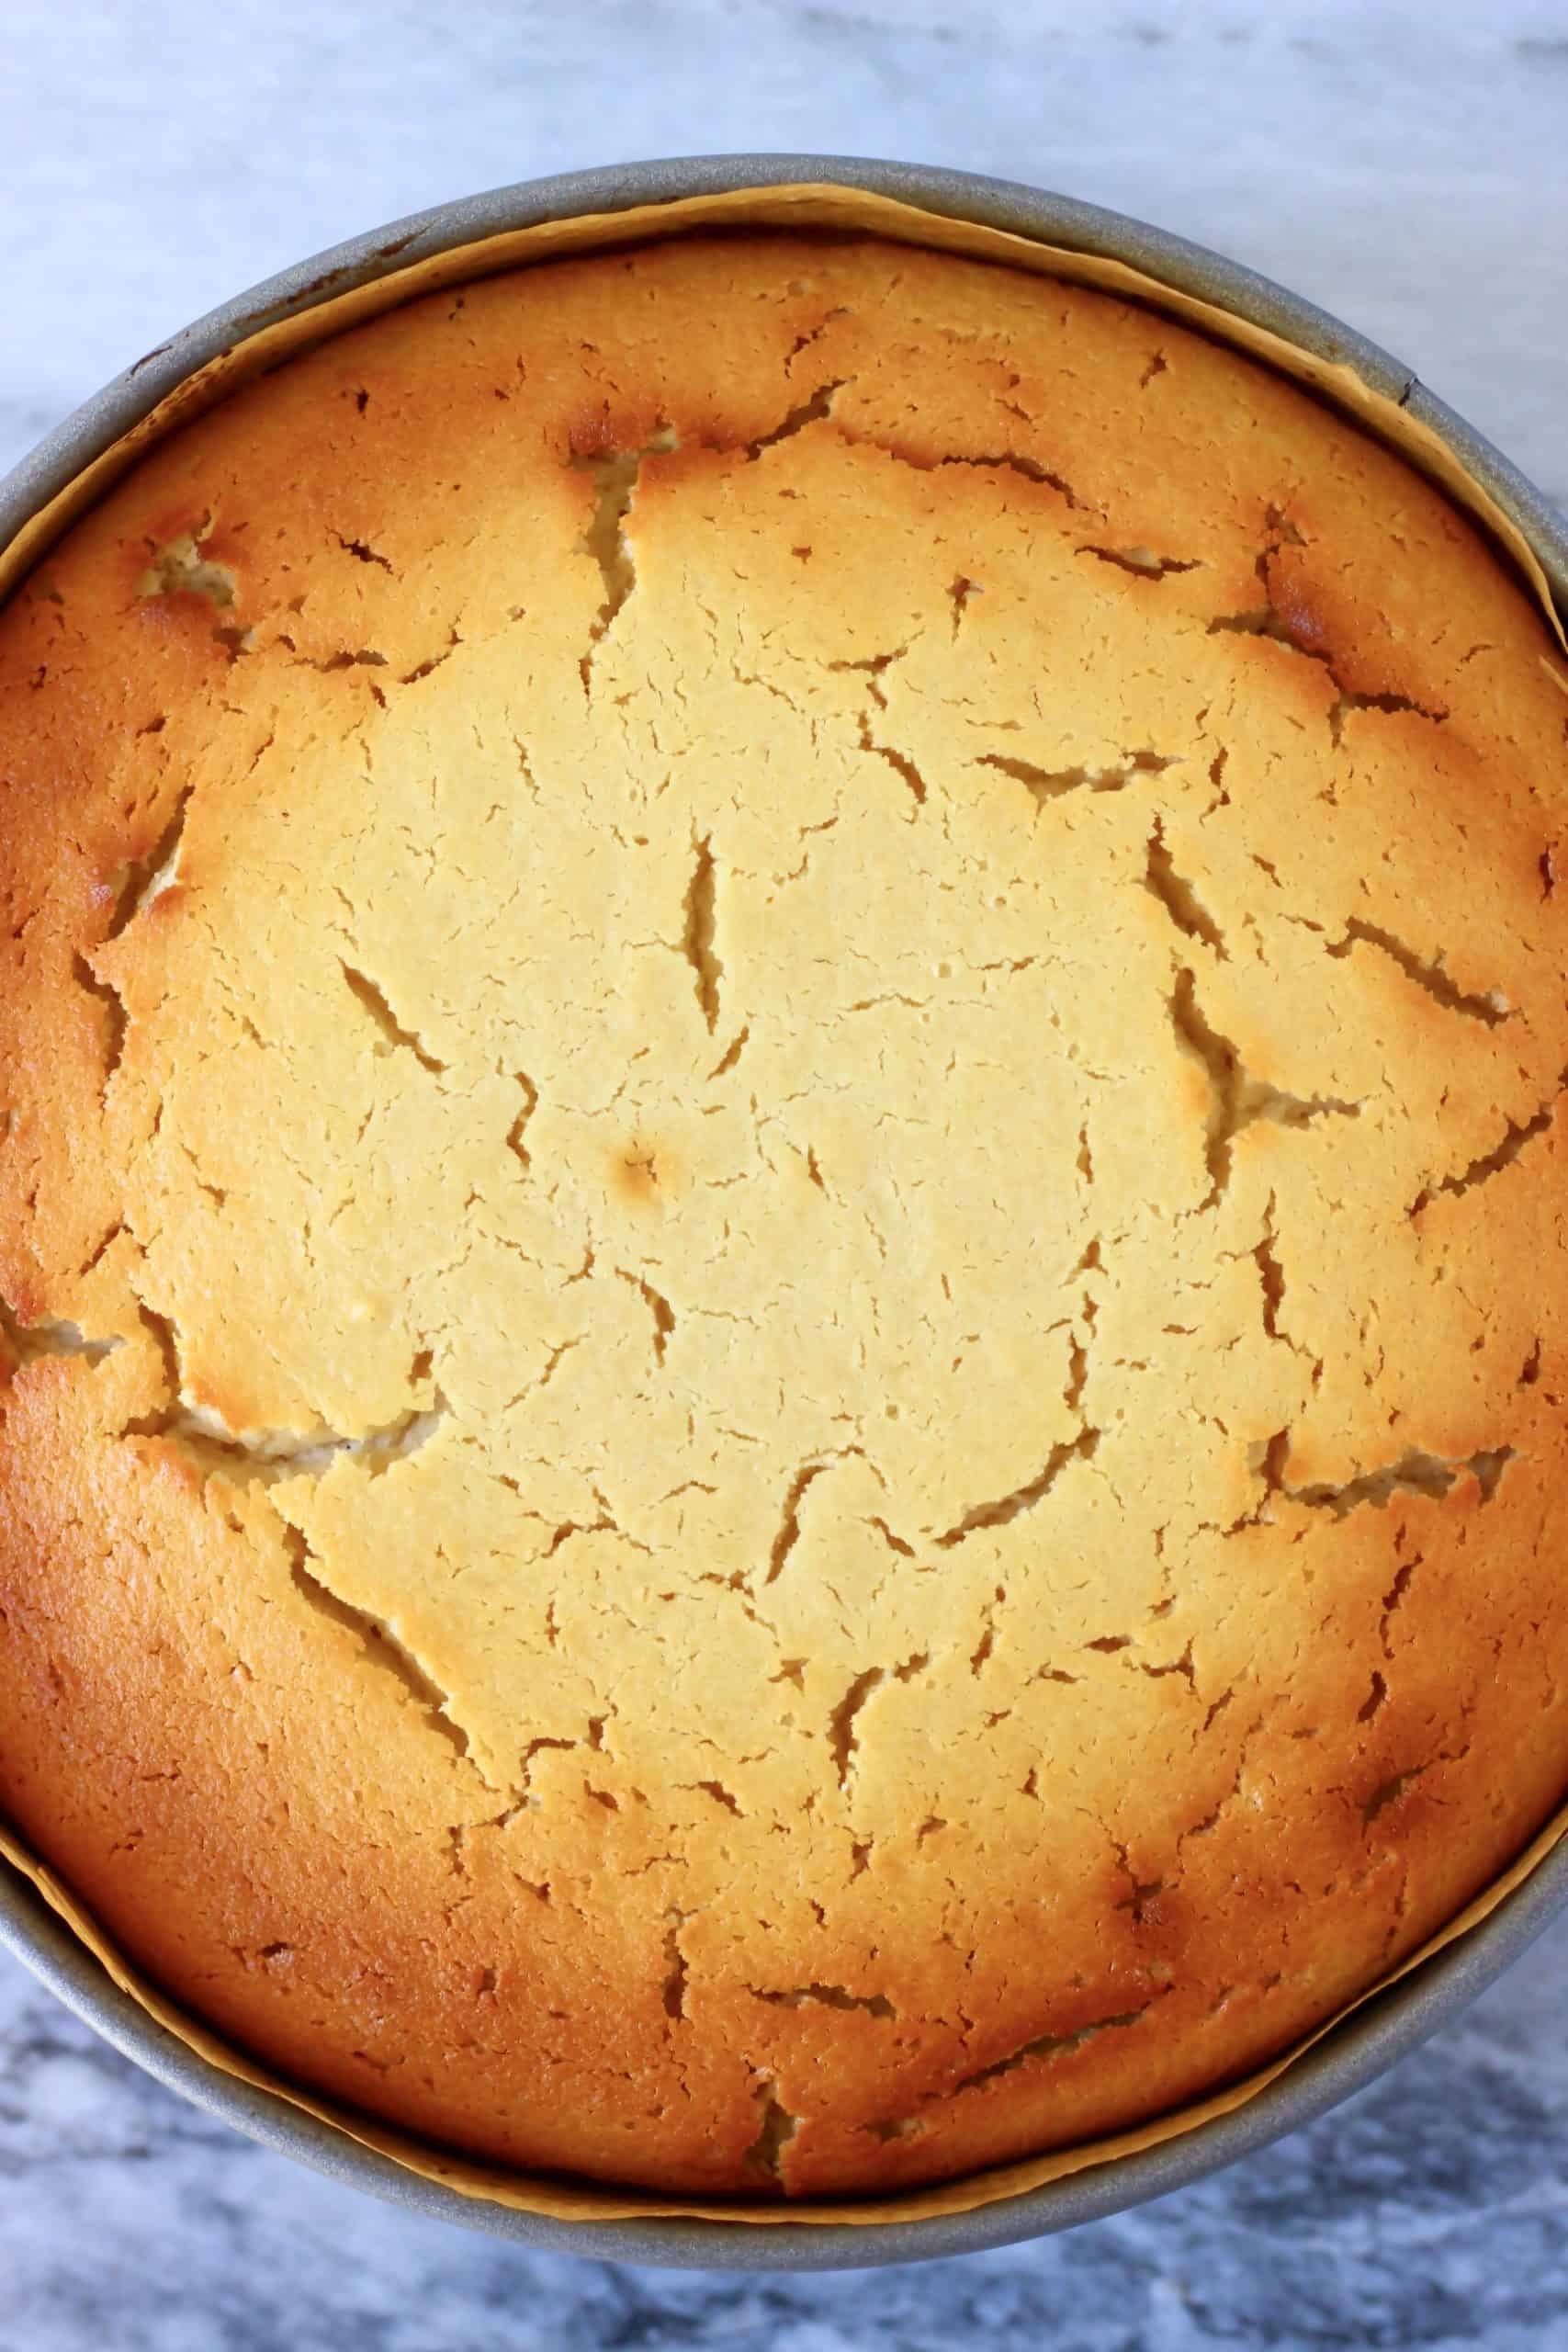 Golden brown vegan baked cheesecake in a springform baking tin